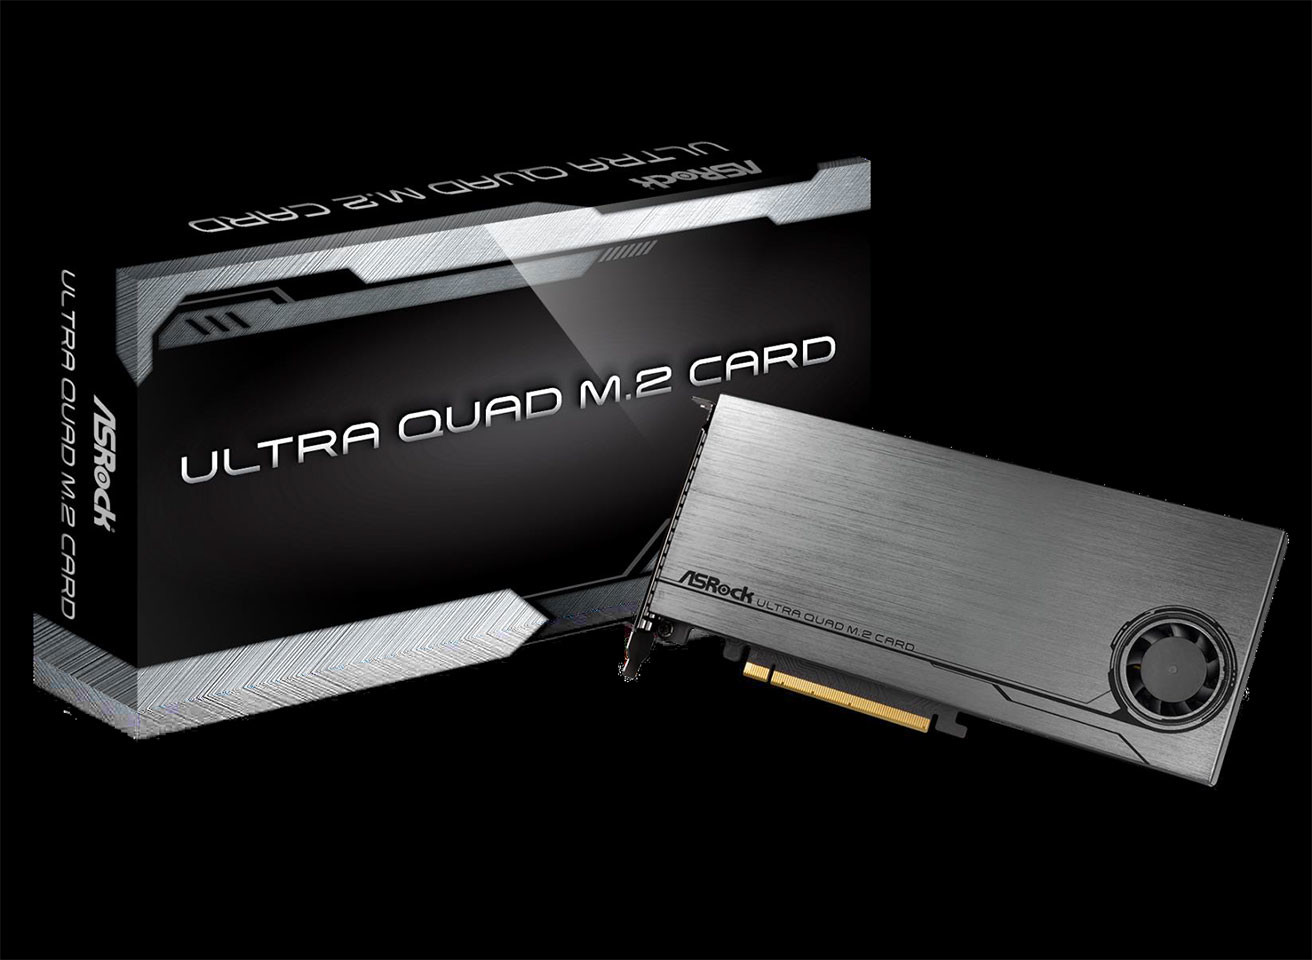 Photo of ultra fast and large SSDs: Get to know the Ultra Quad M.2 card